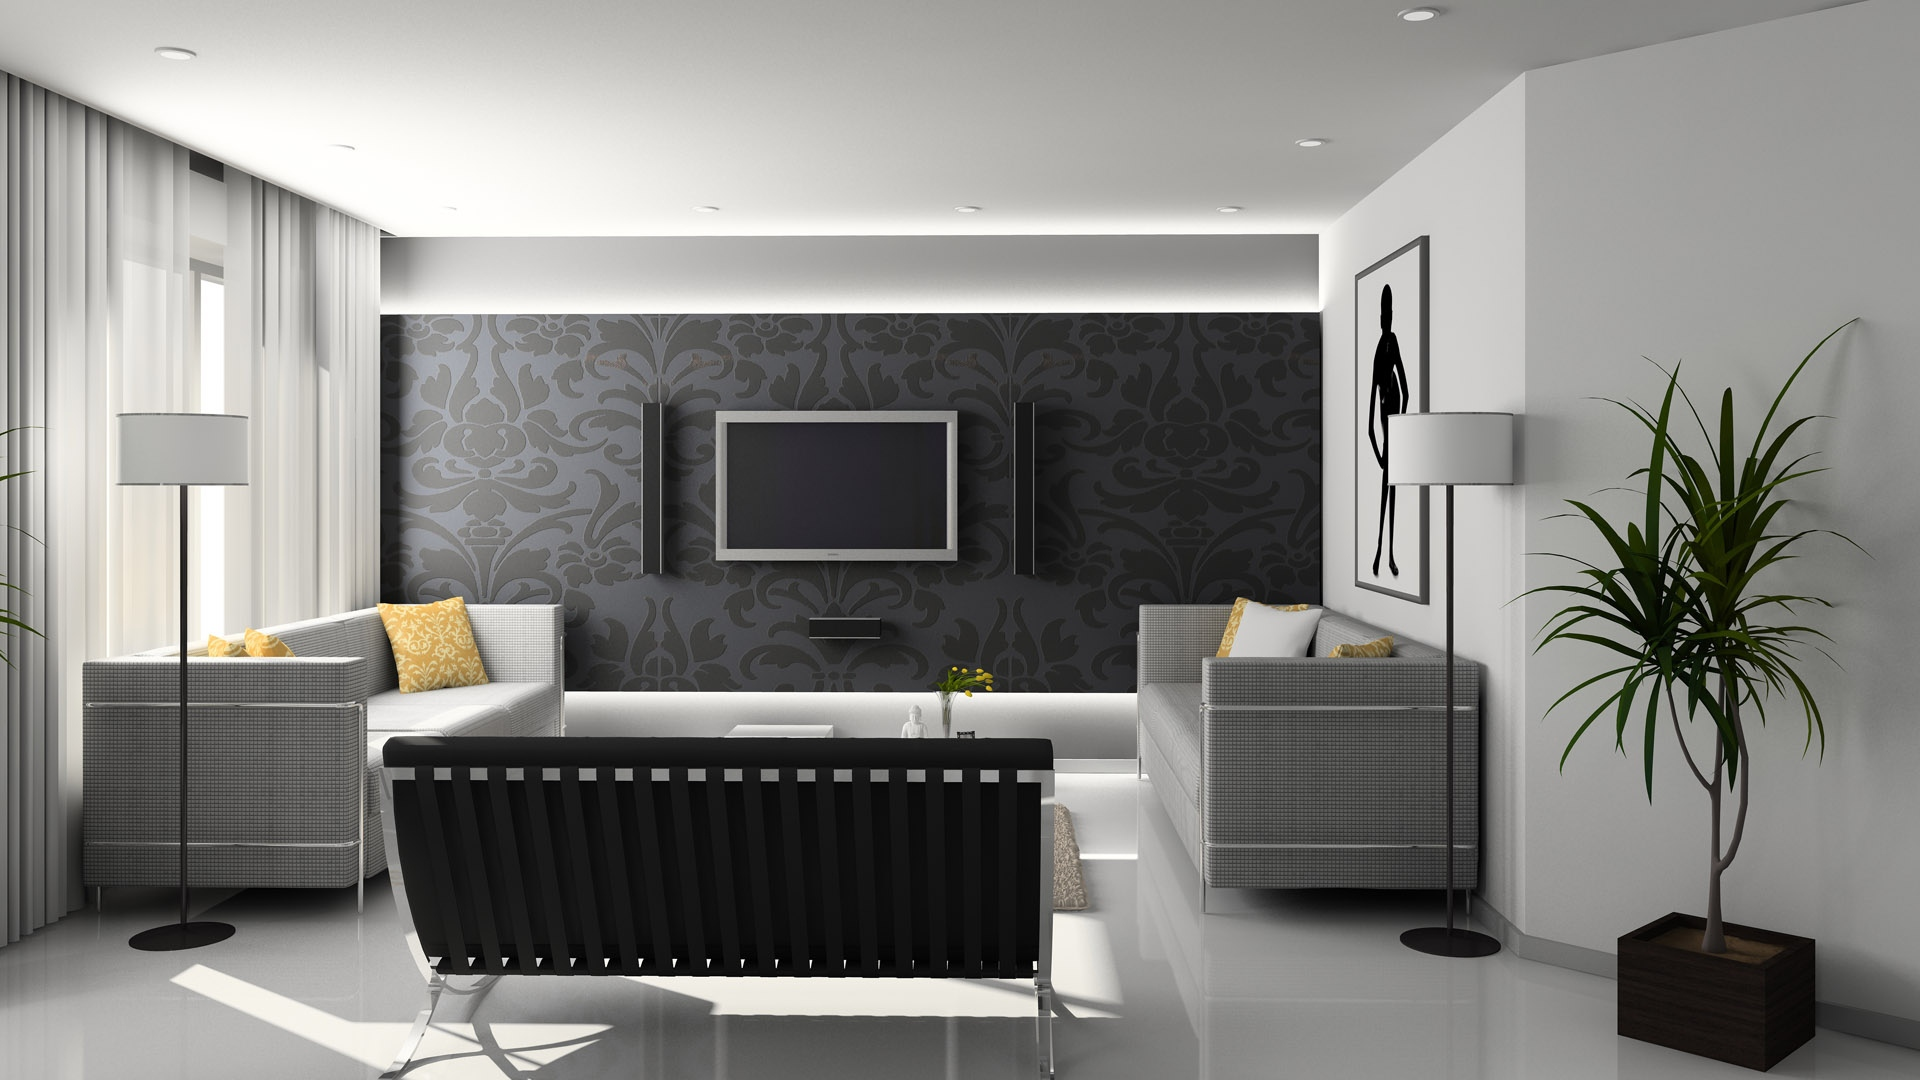 Download Wallpaper 1920x1080 living room, room, style, sofa, tv ...